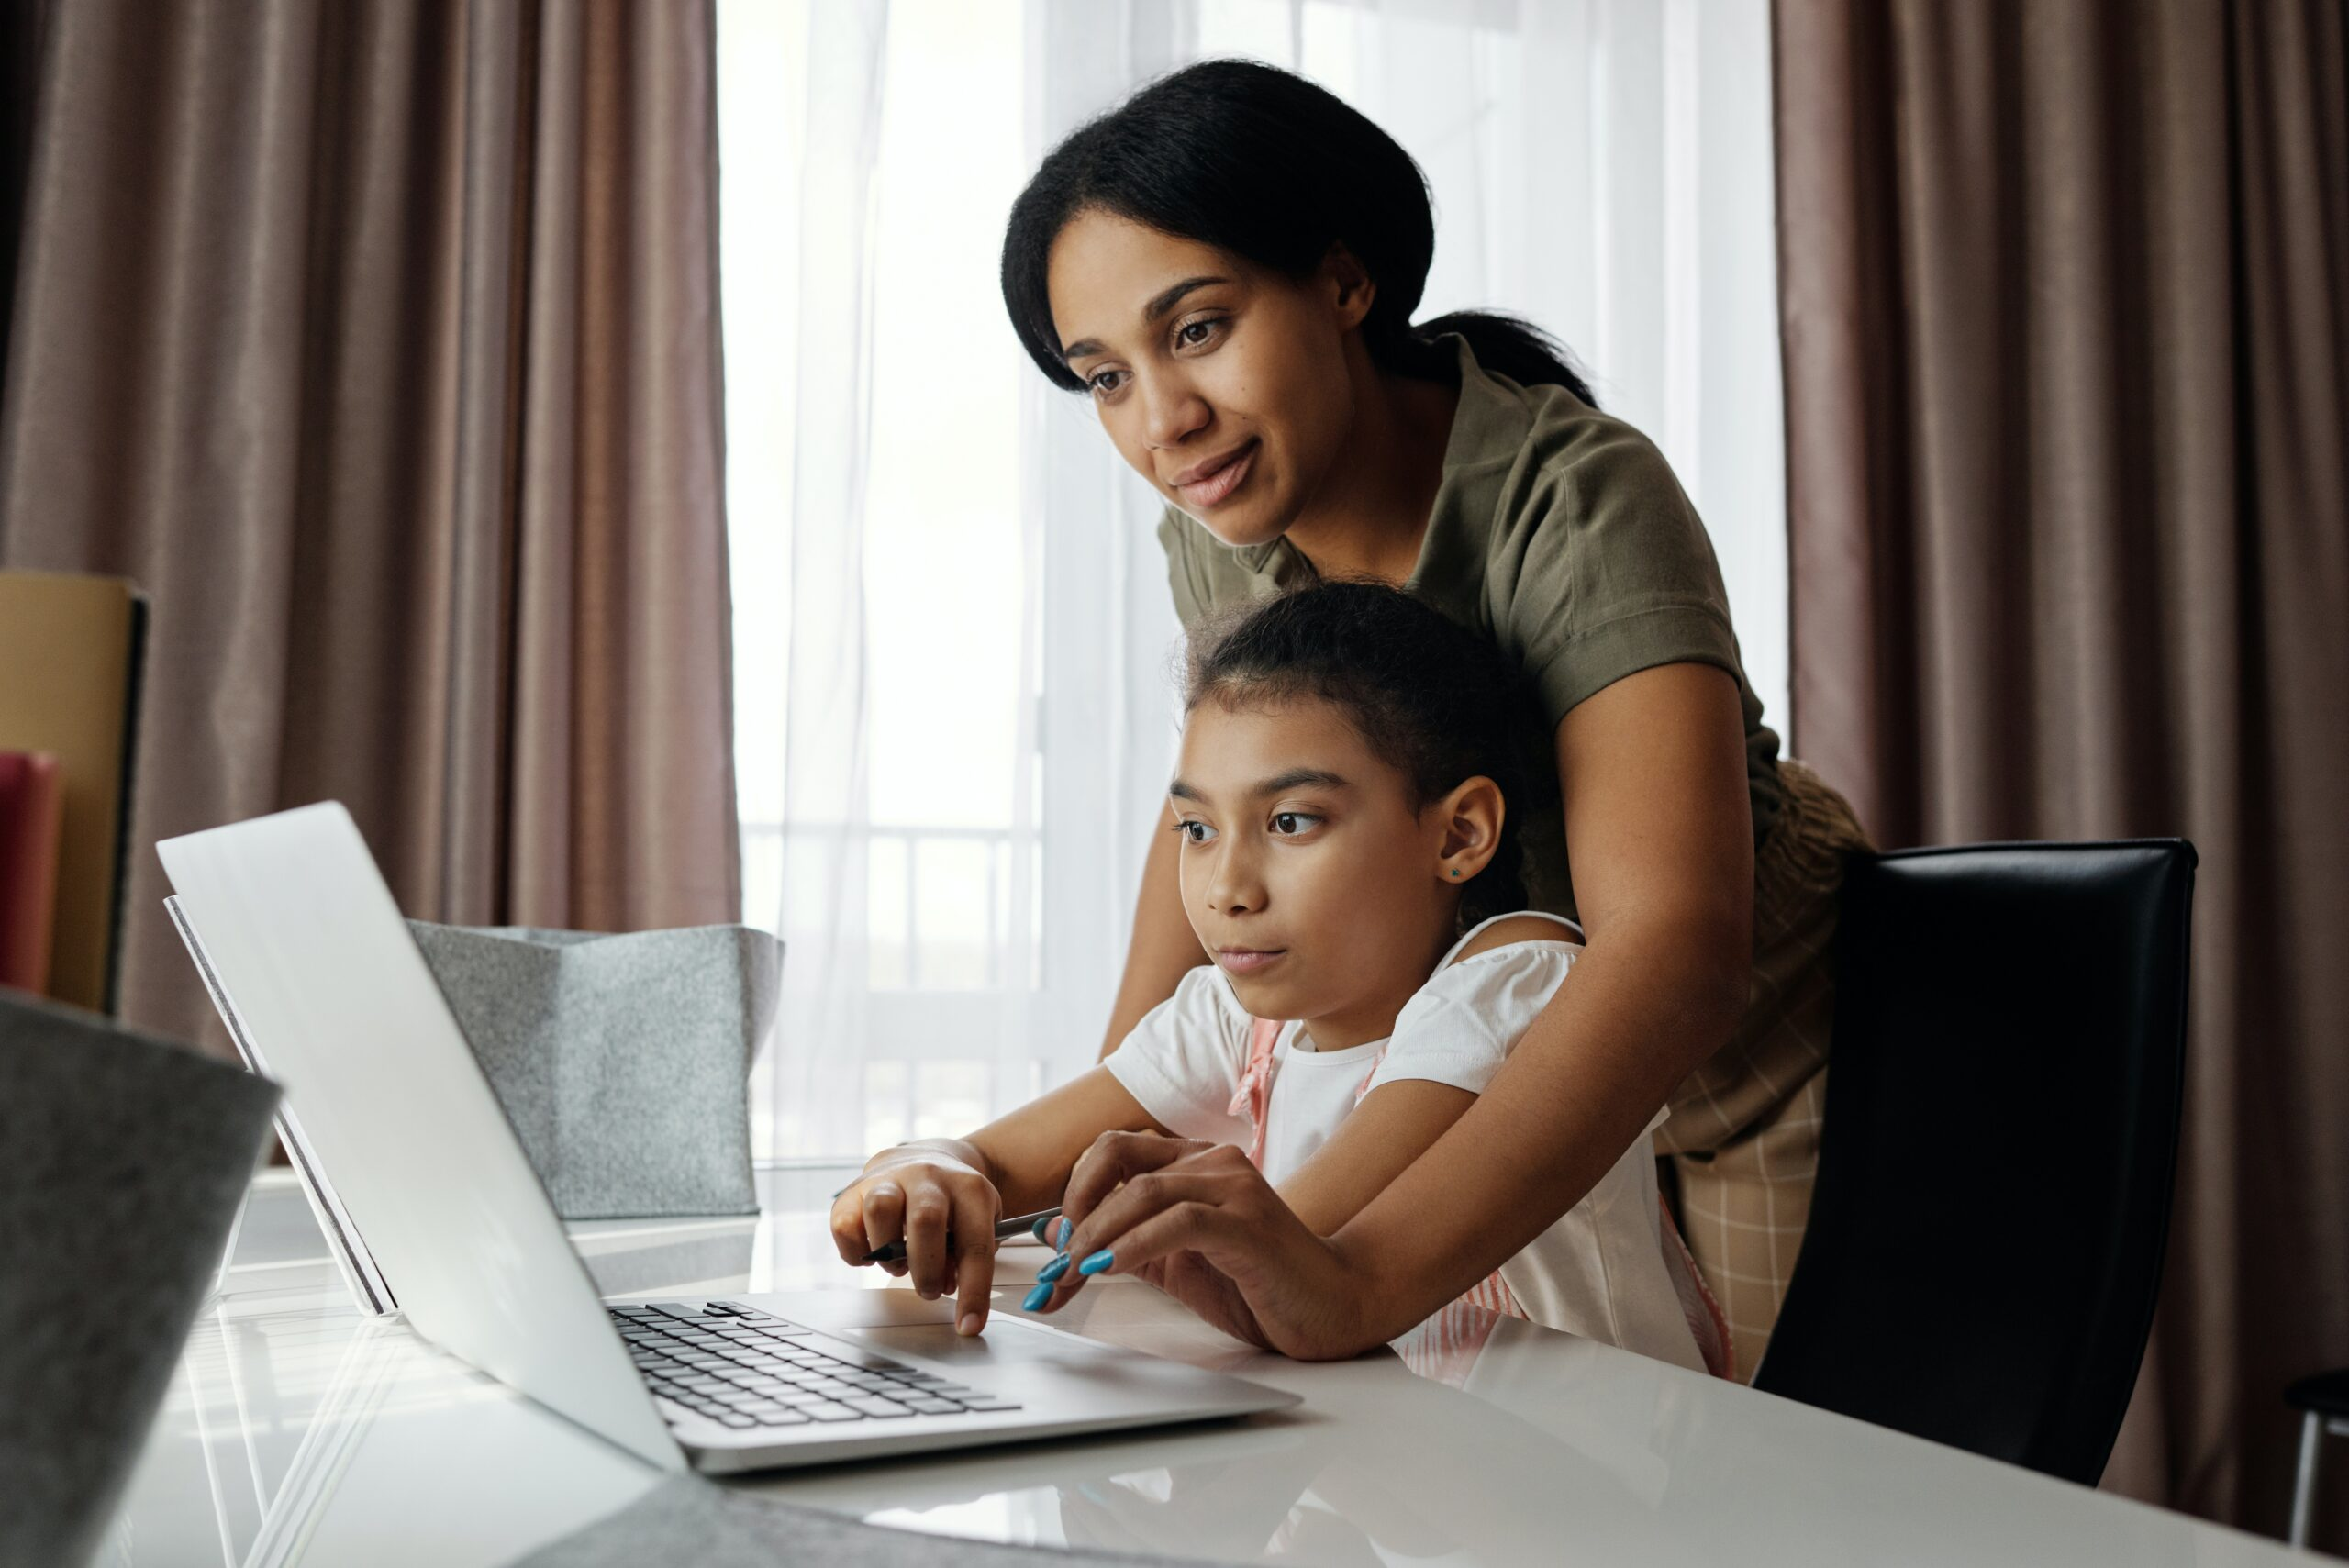 mom leaning over youth at computer